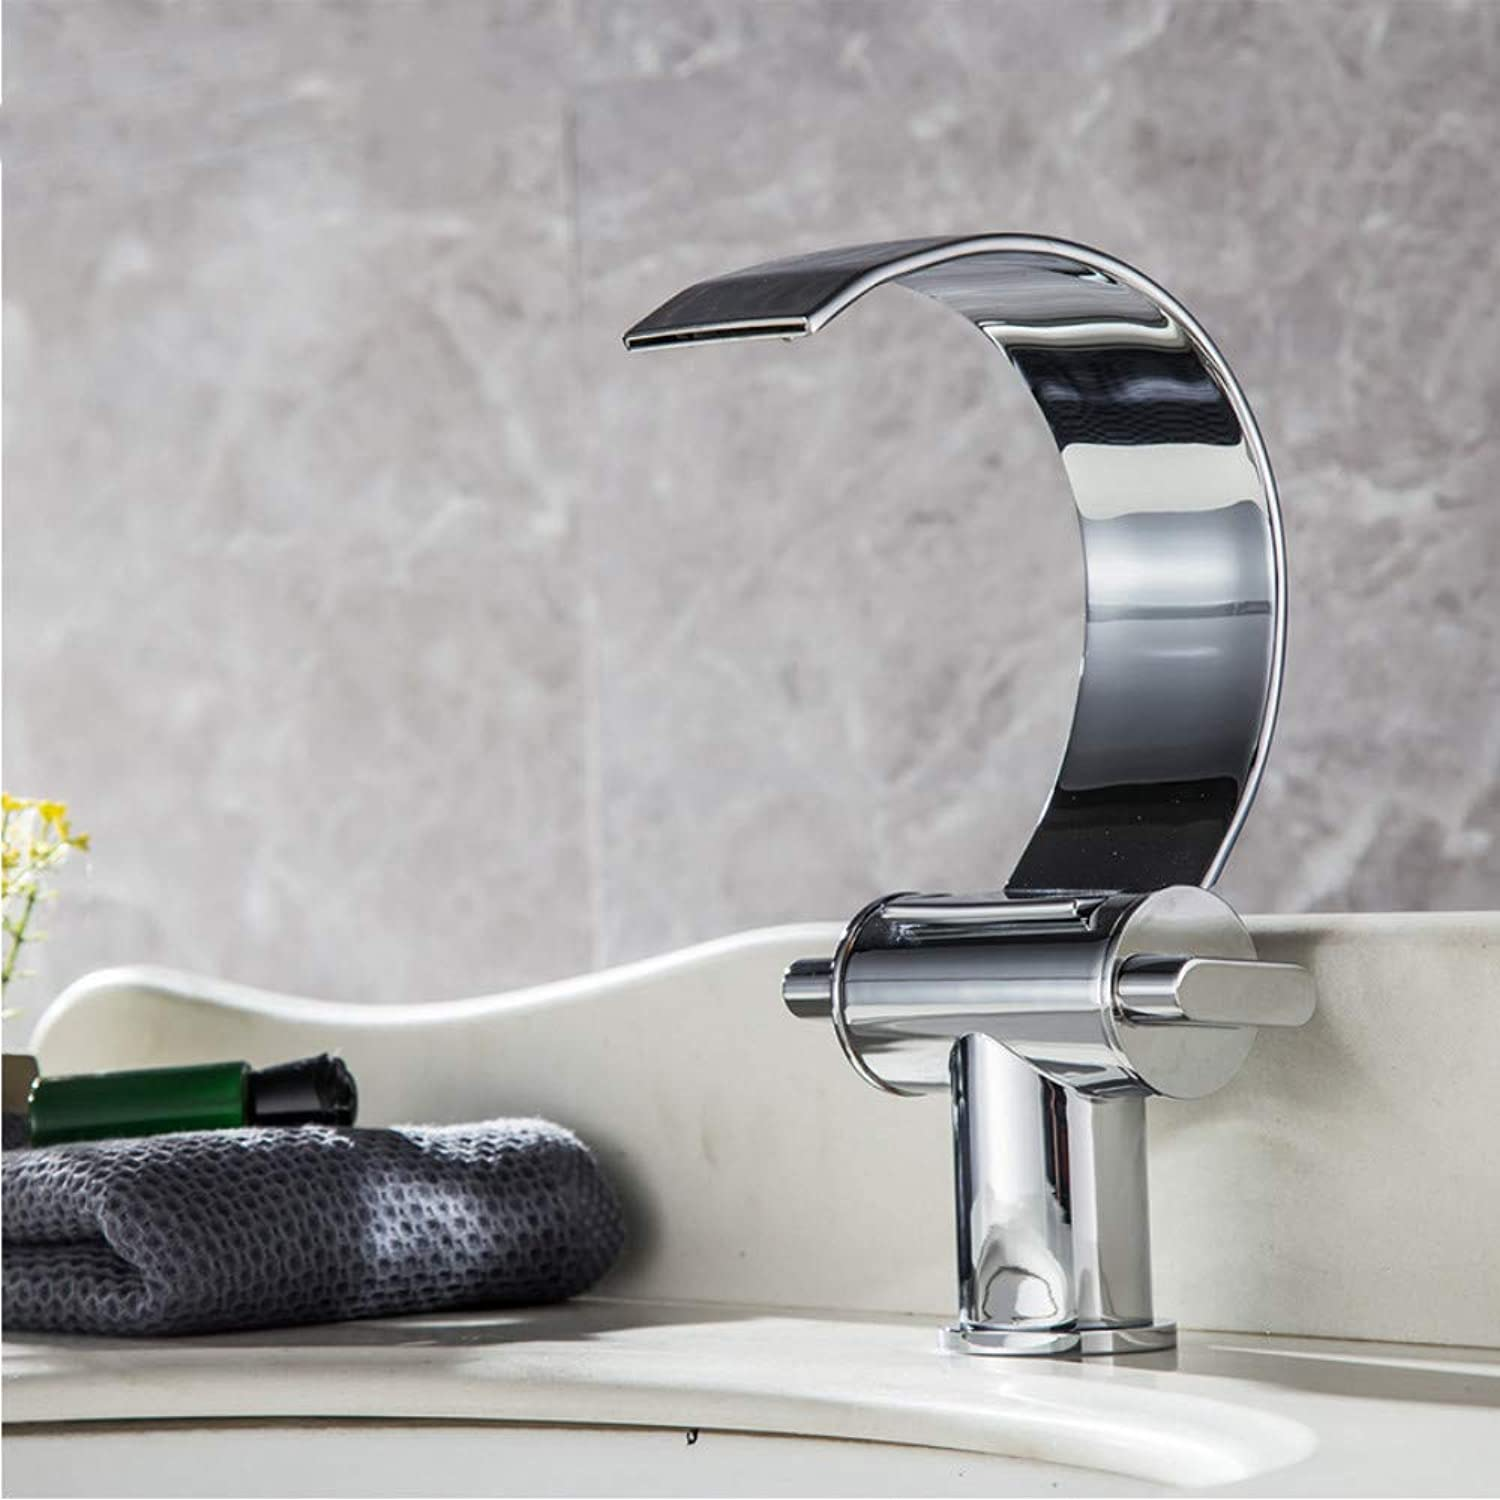 LLLYZZ Waterfall Spout Single Handle Bathroom Vessel Faucet Basin Mixer Tap Chrome Finish Double Handle Single Hole Hot and Cold Taps